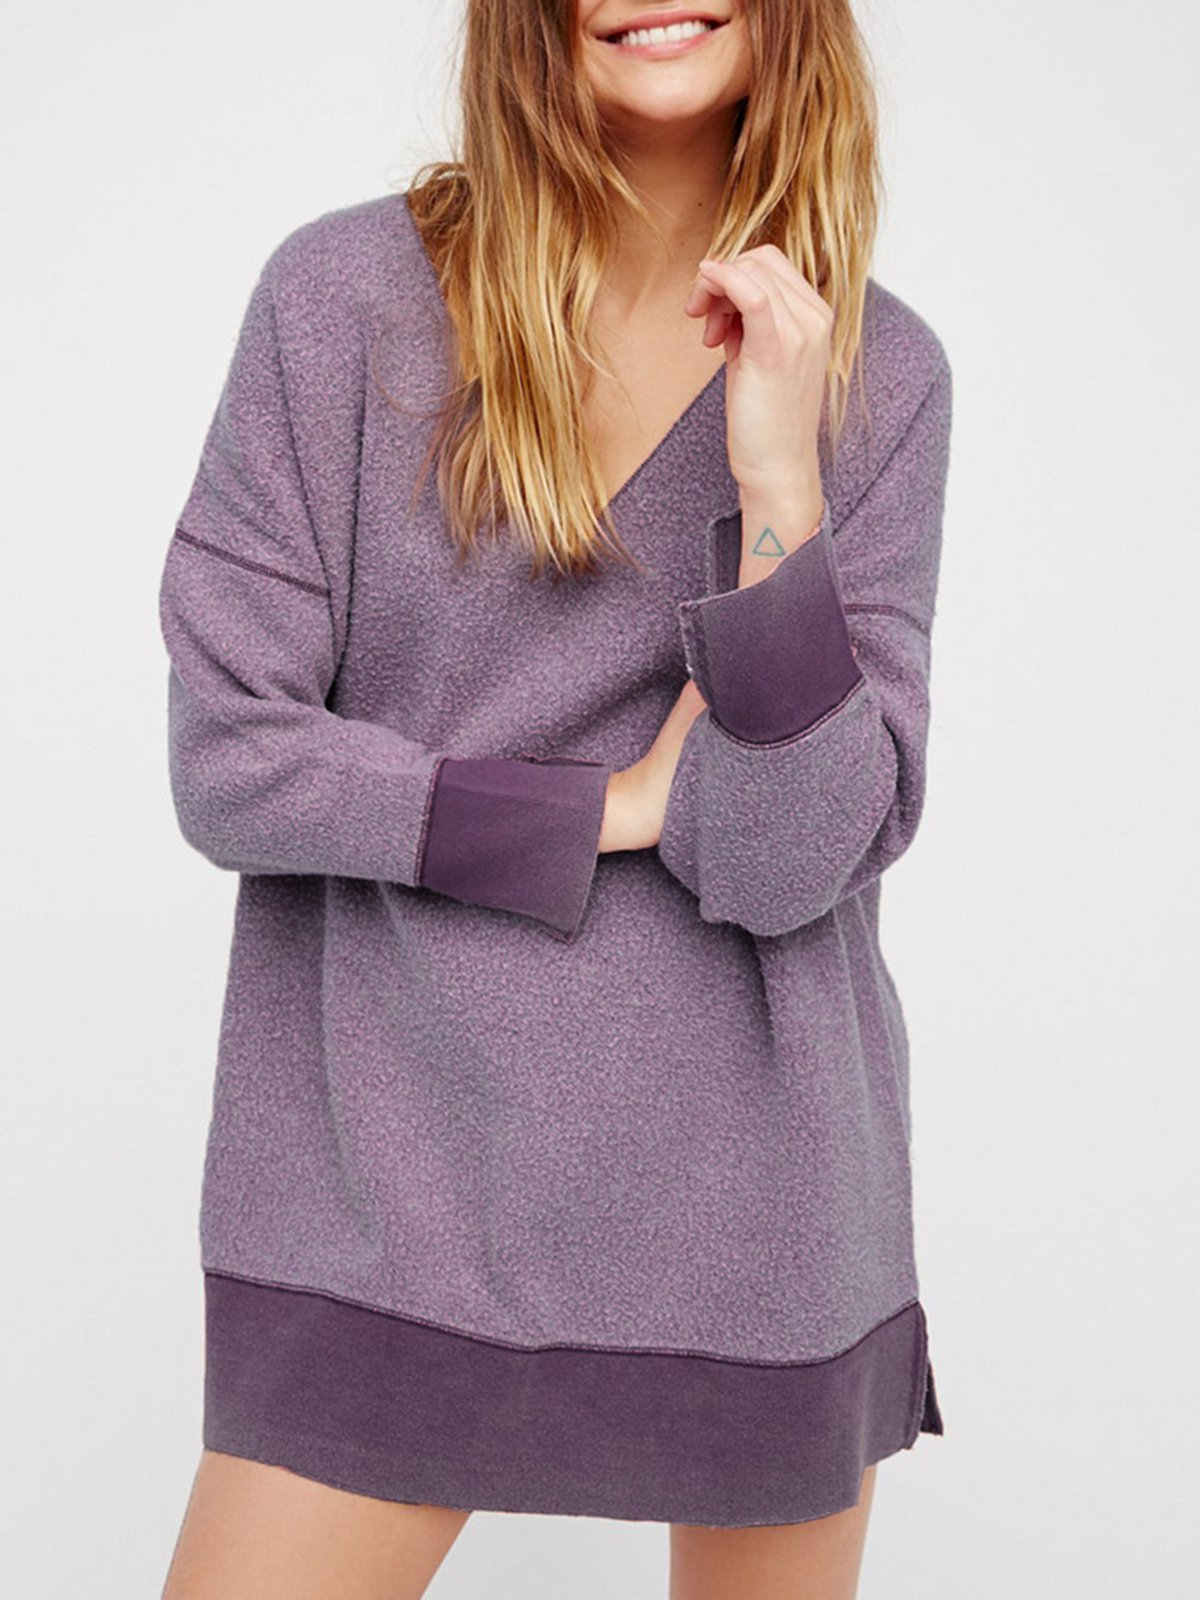 V Neck Long Sleeve Casual Oversized Sweatshirts